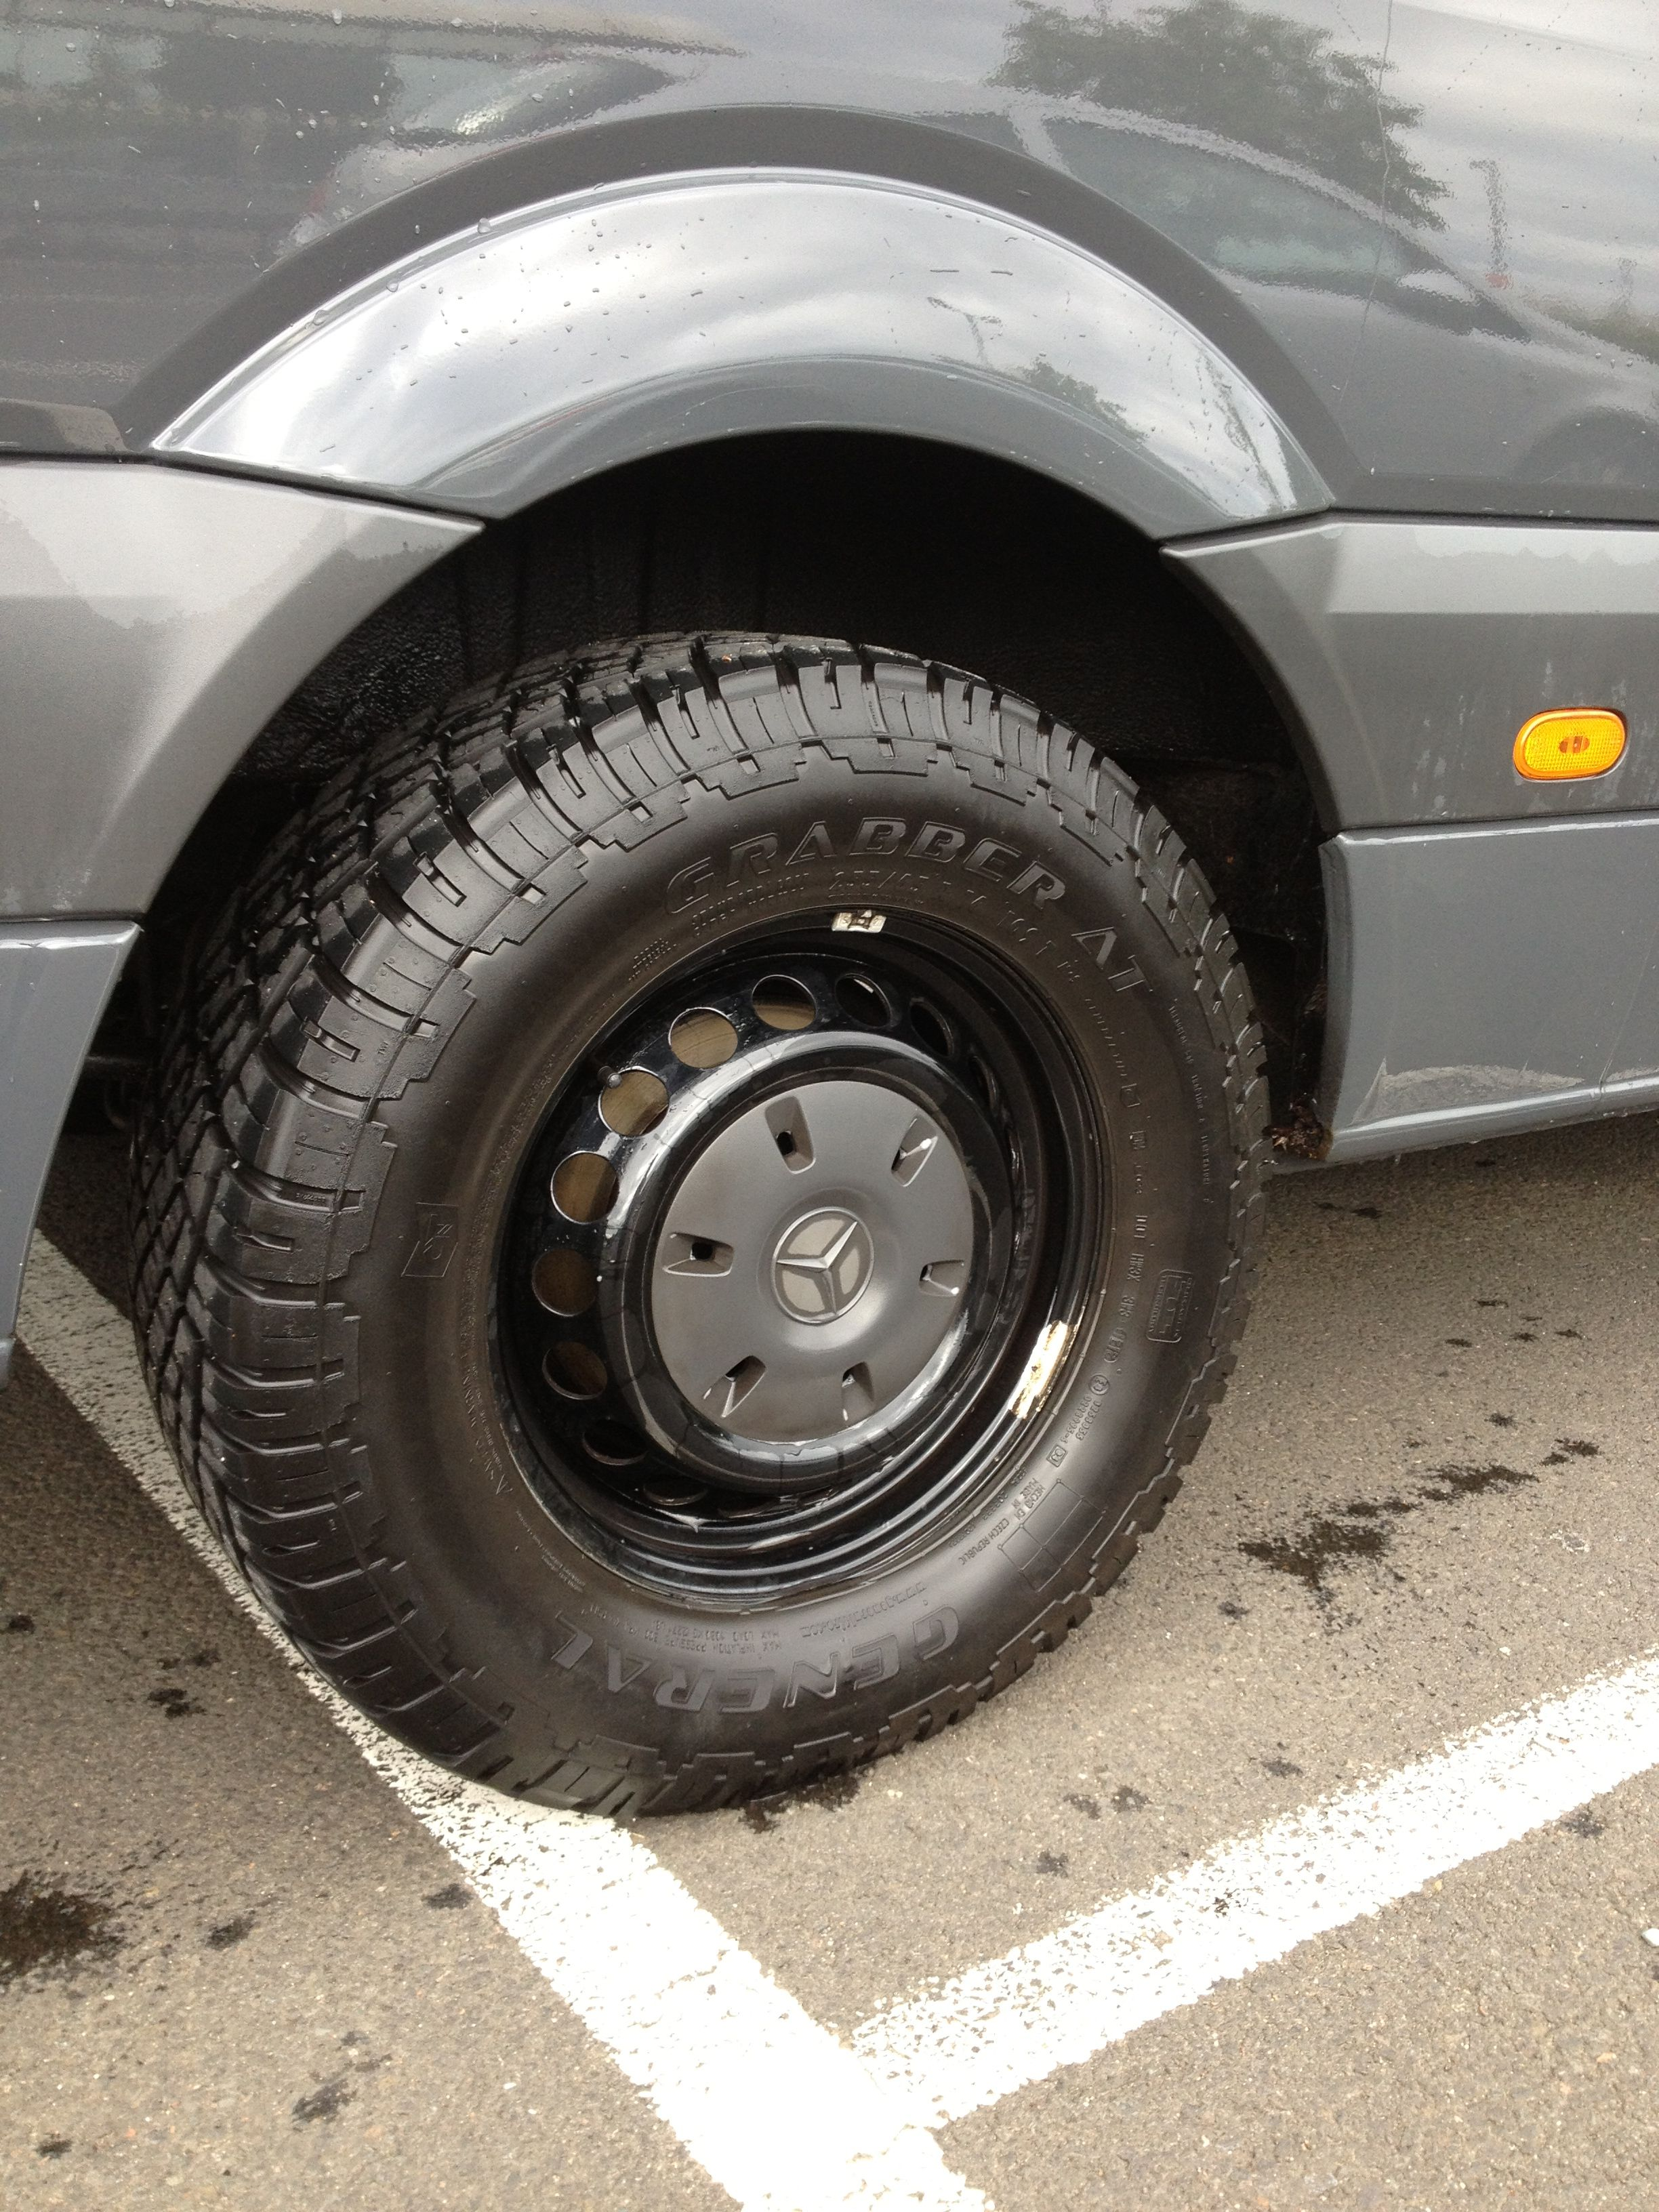 Bf Goodrich All Terrain >> Mercedes sprinter with all terrain tyres | Mercedes sprinter, All terrain tyres, Cars motorcycles